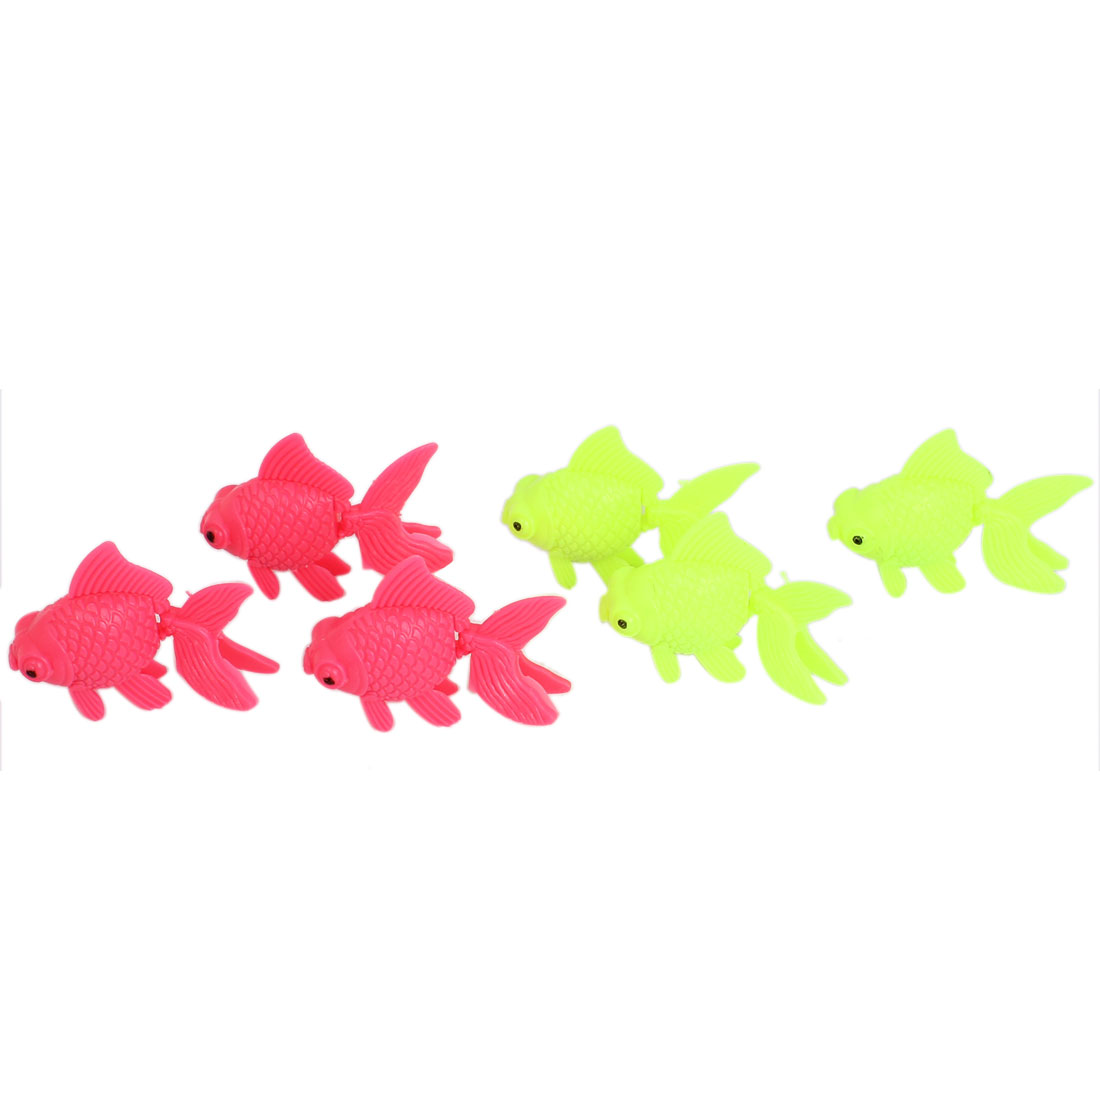 Aquarium Fish Tank Decor Plastic Emulation Floating Goldfish 6Pcs